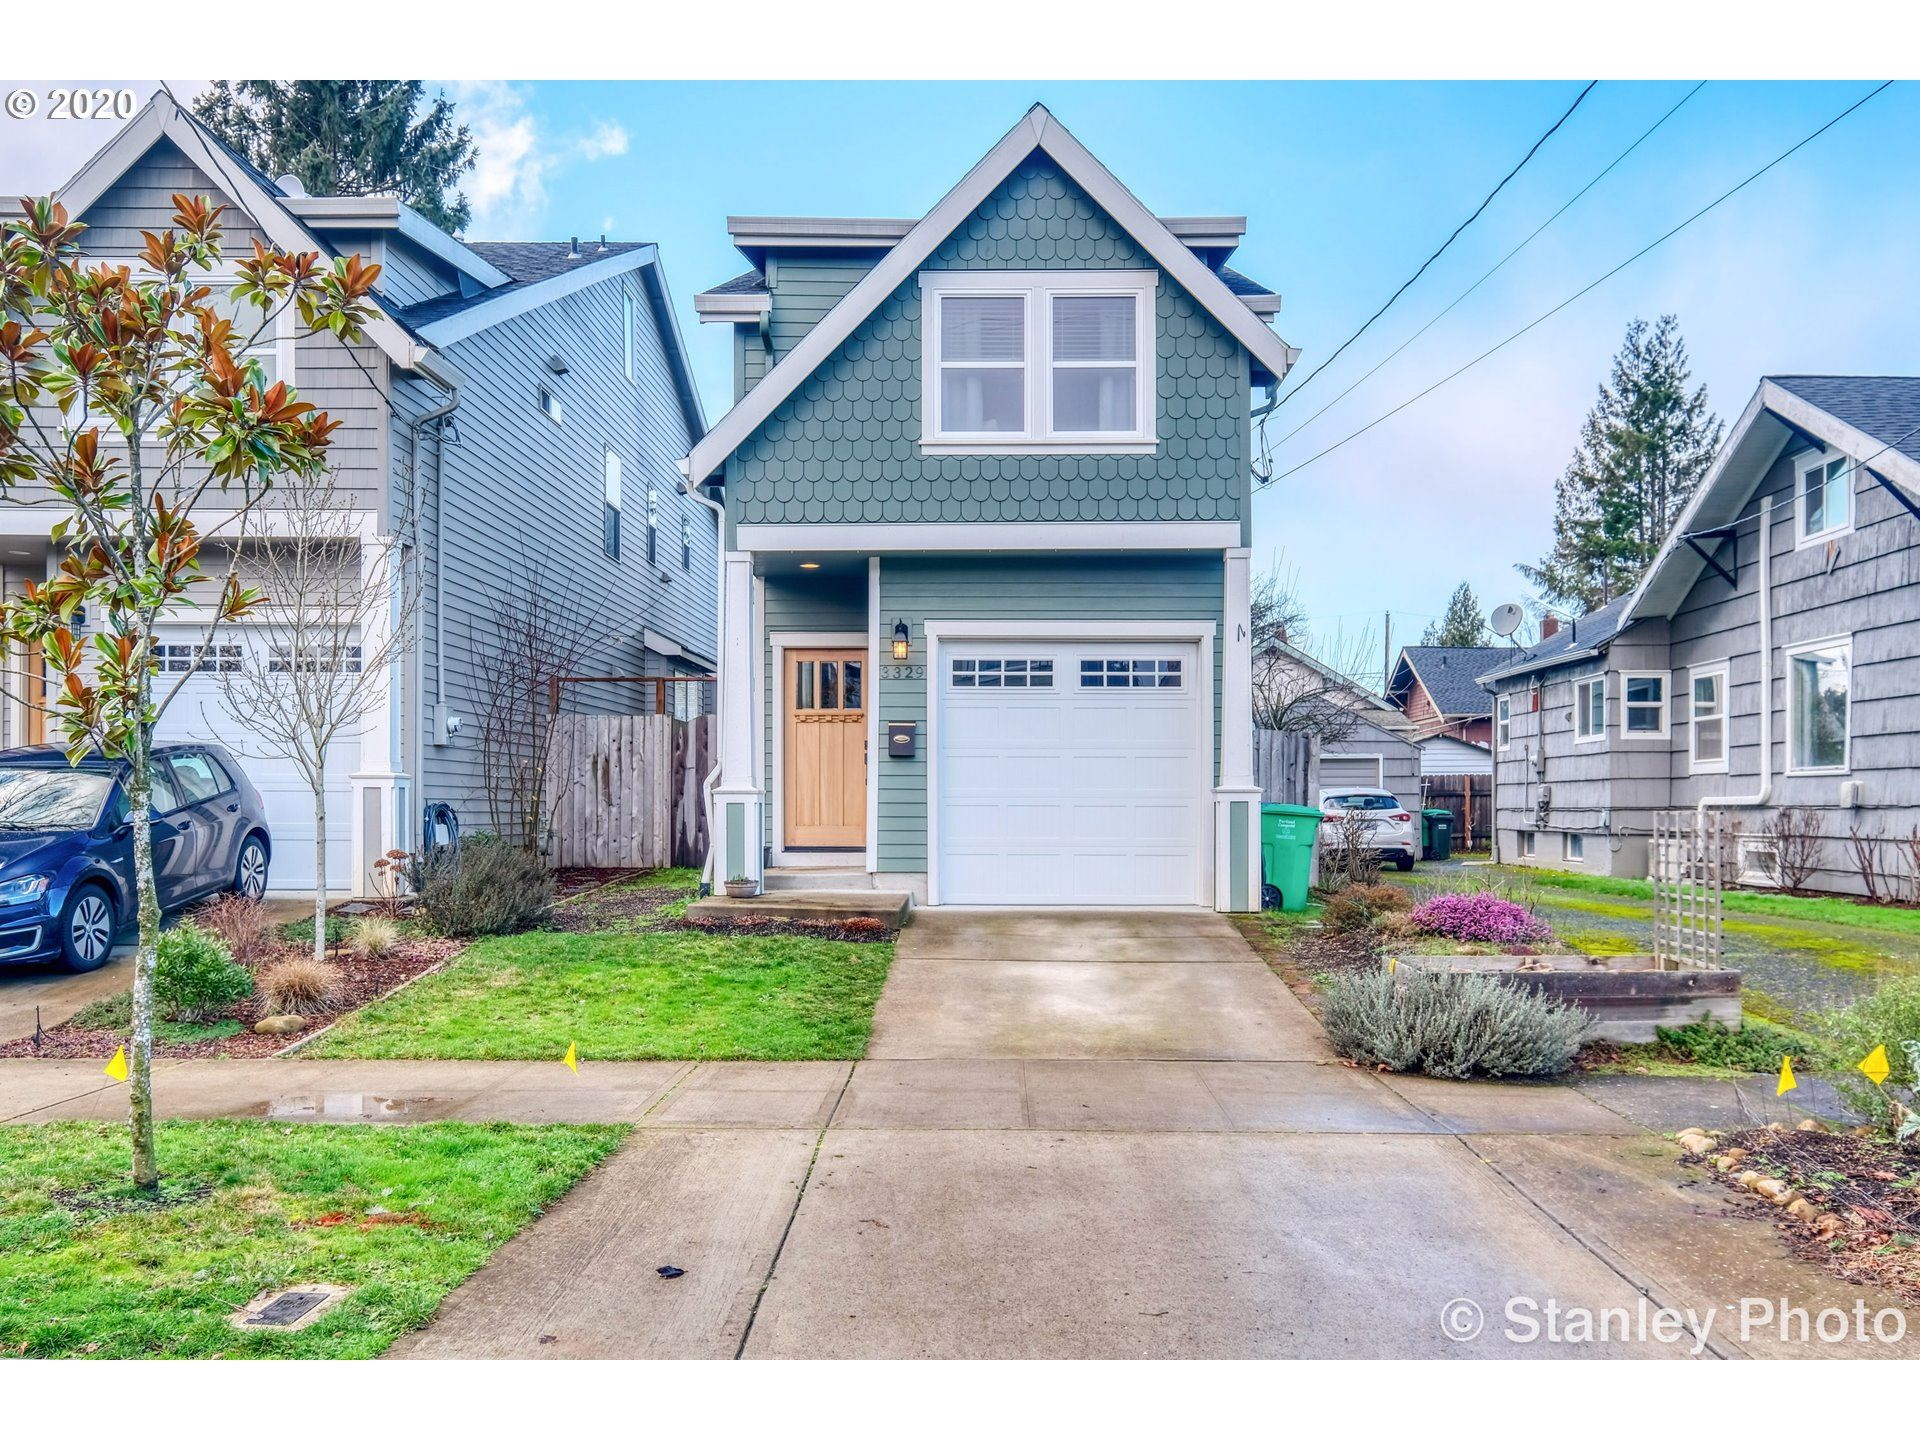 3329 NE 74TH AVE, Portland, OR 97213 - MLS#: 20404362